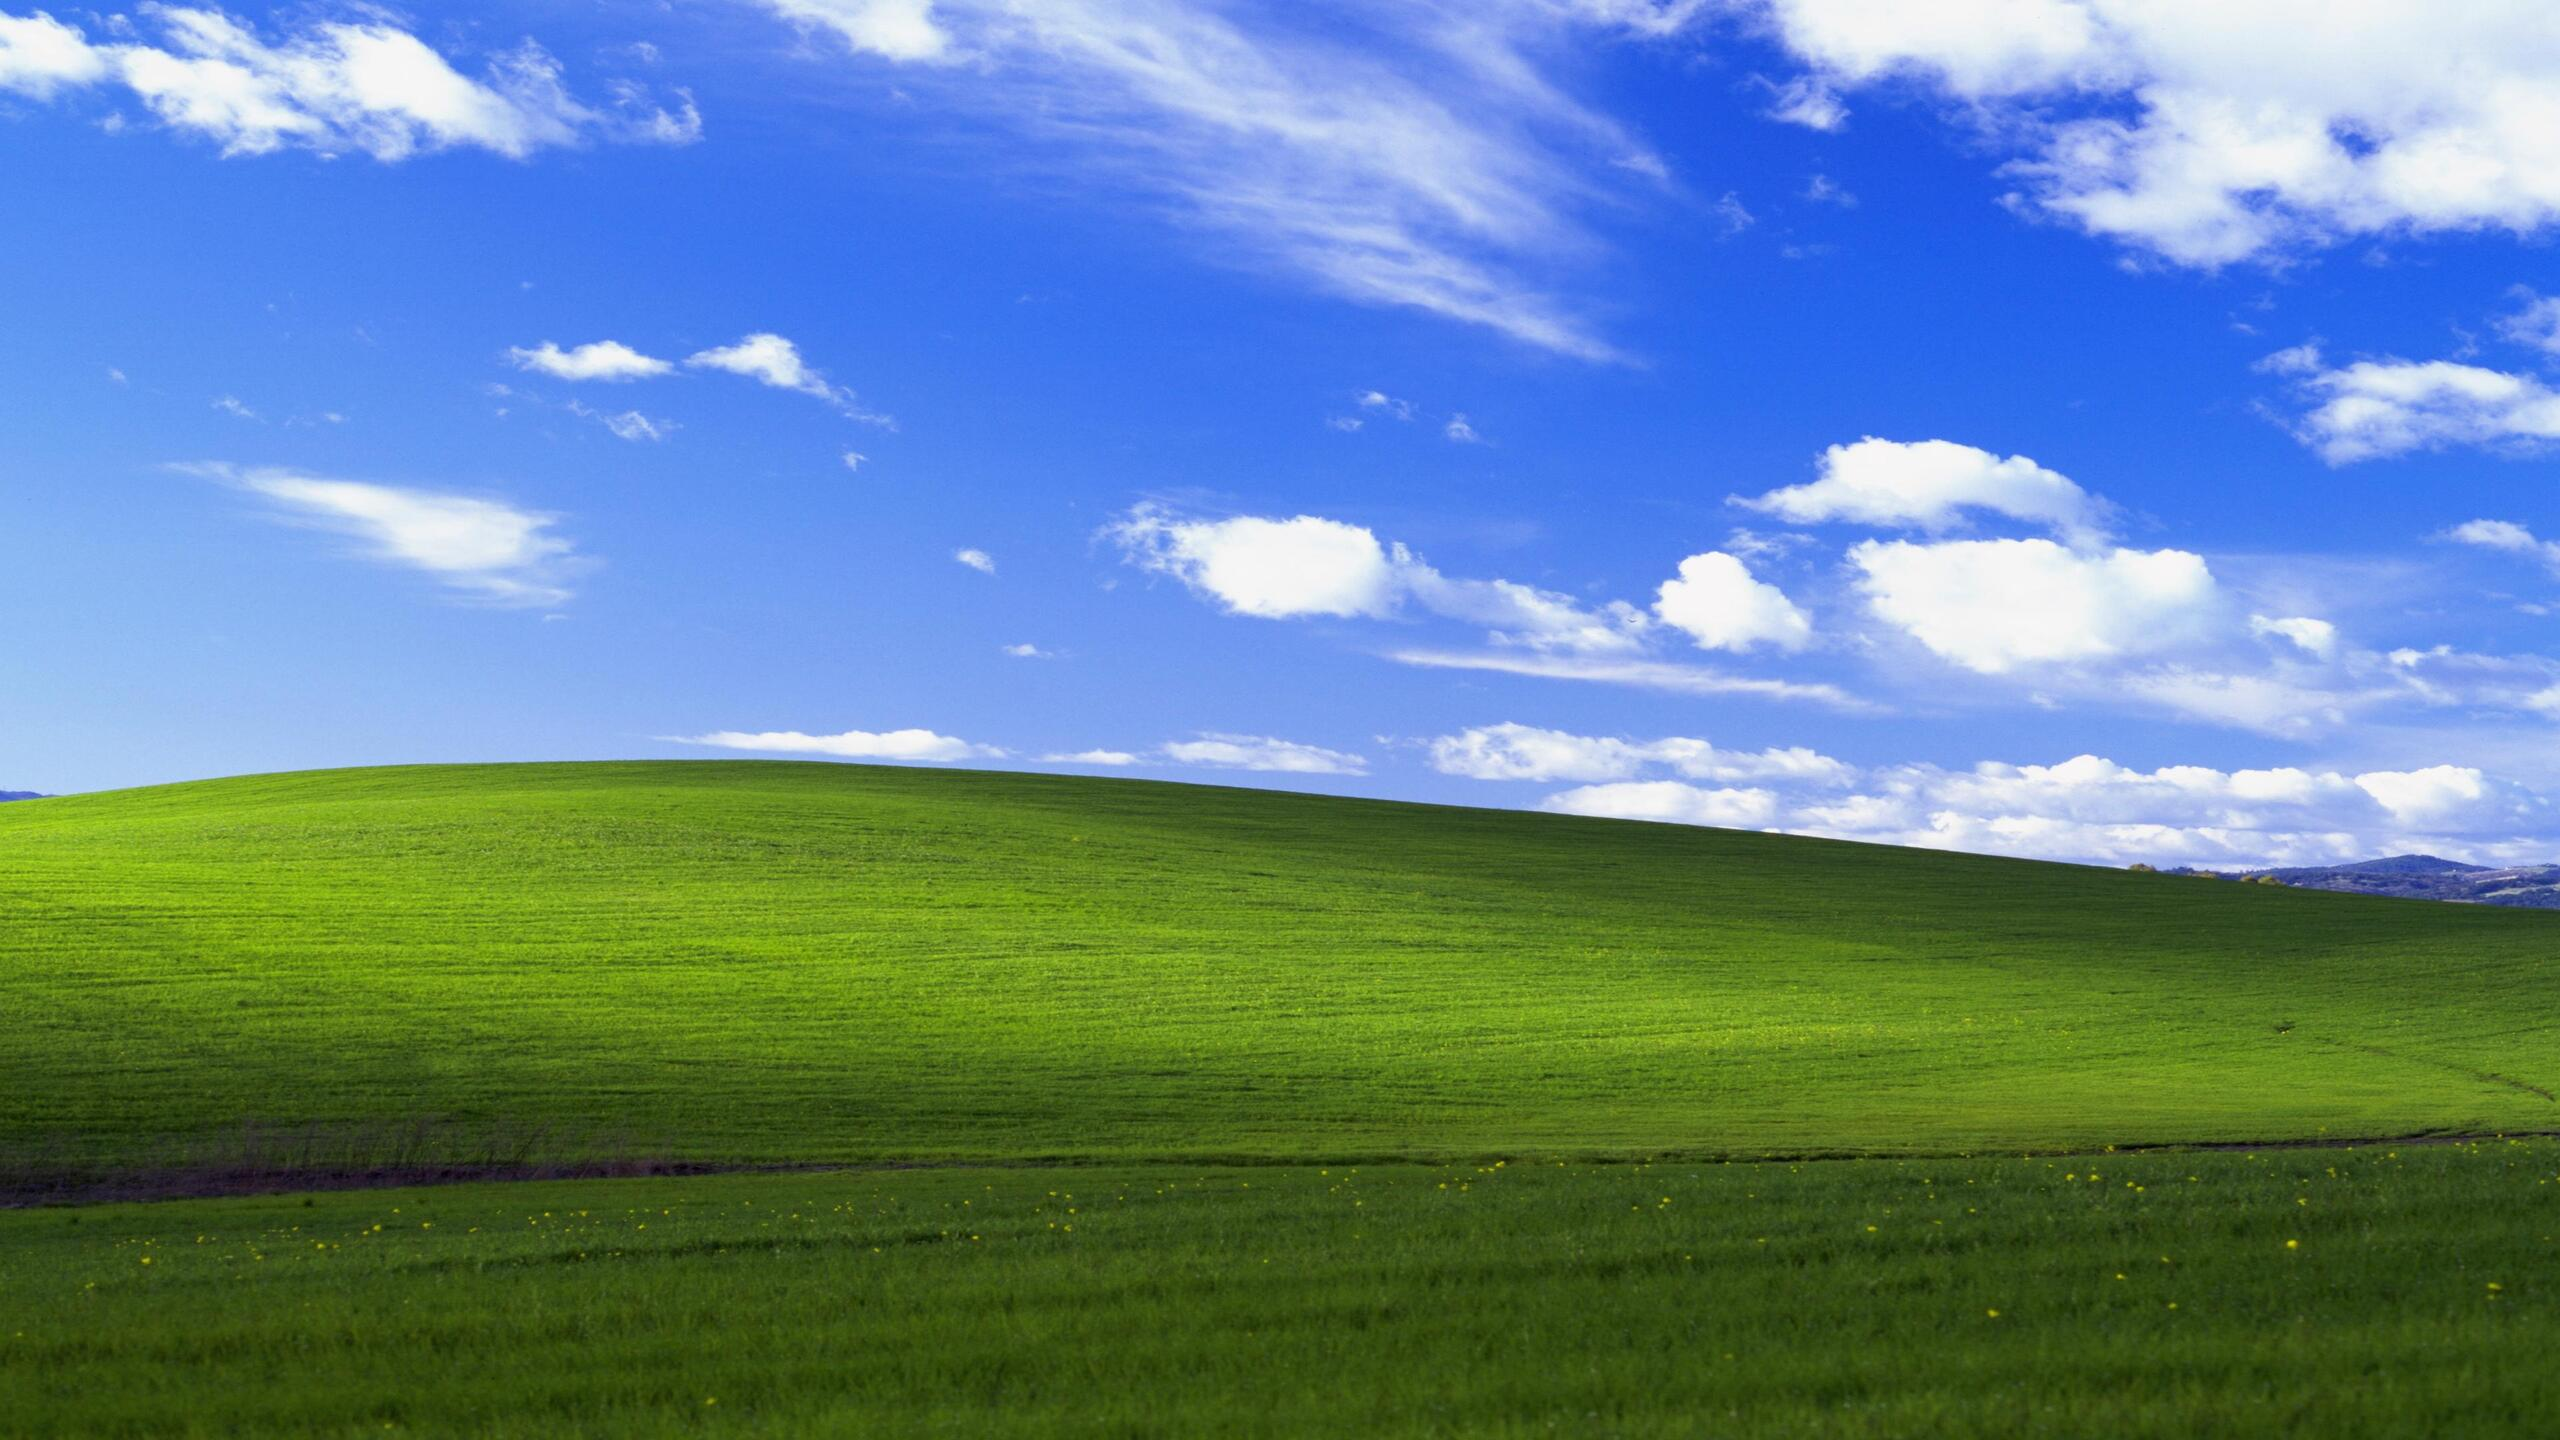 2560x1440 Windows Xp Bliss 4k 1440p Resolution Hd 4k Wallpapers